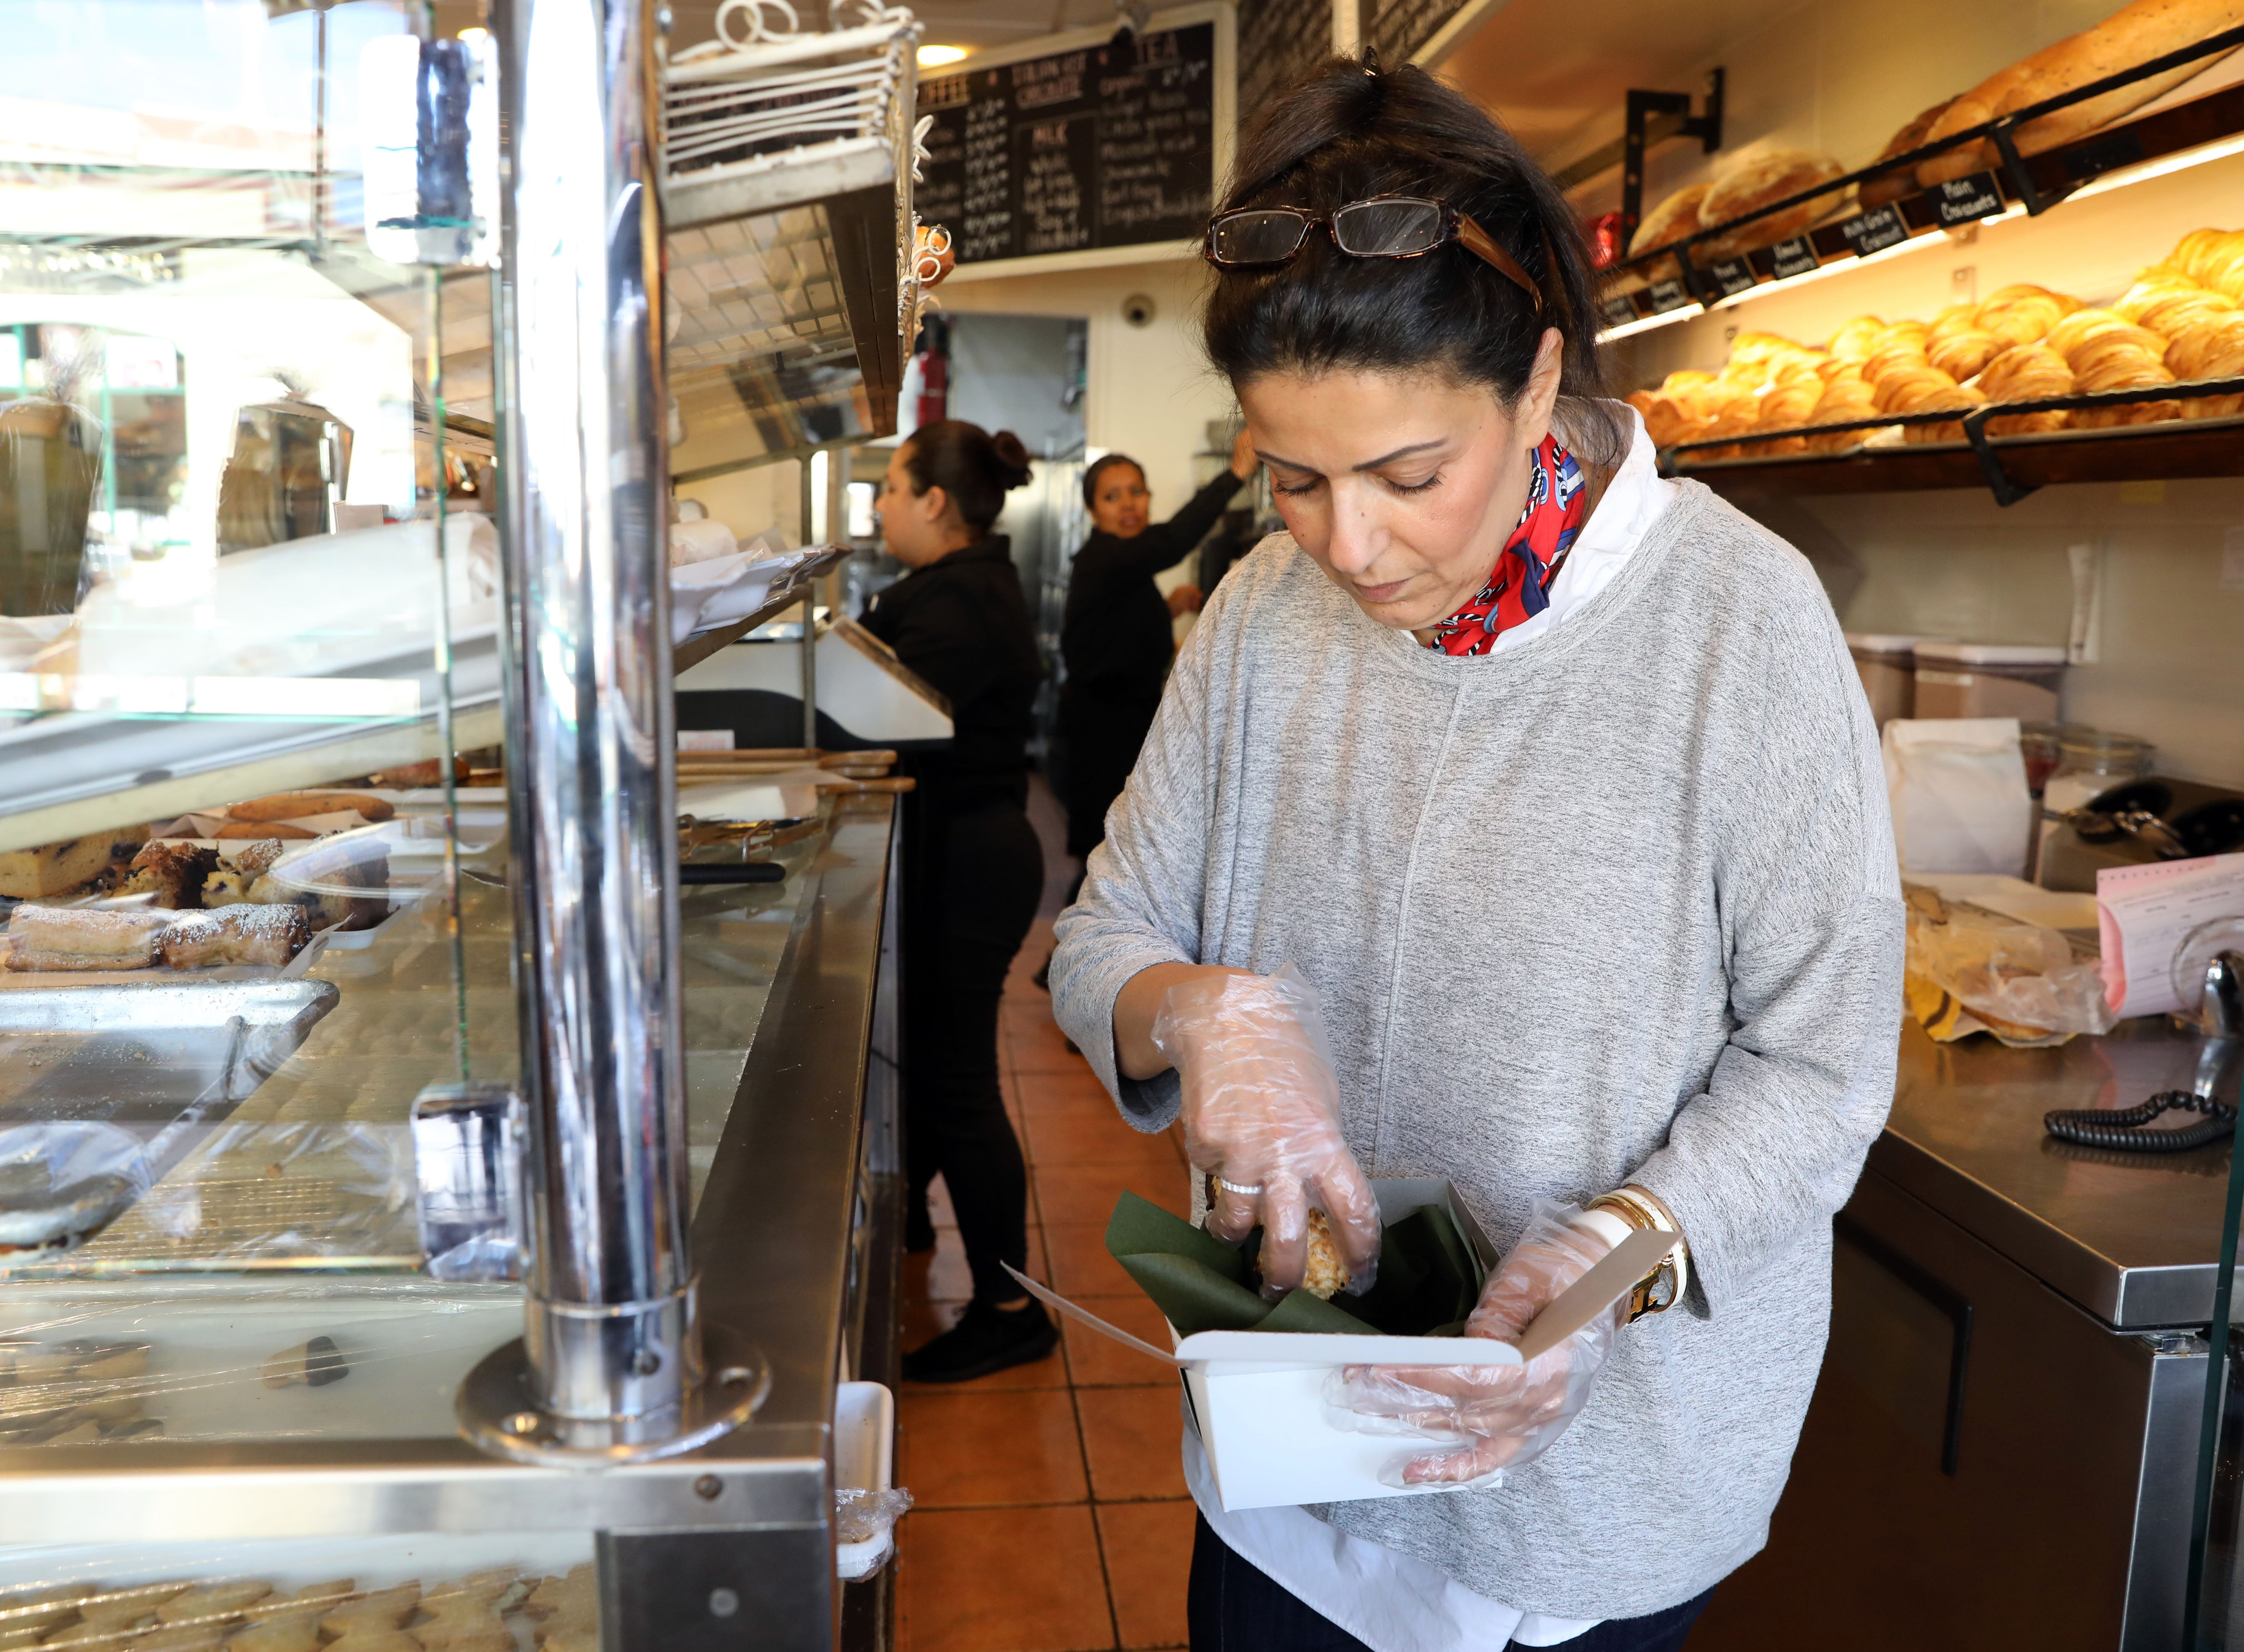 Co-owner Tal Campana boxes cookies at Martine's Fine Bake Shoppe in Tuckahoe Nov. 29, 2018. The family bakery, which has a second location in Scarsdale, is celebrating their 10th anniversary in business.